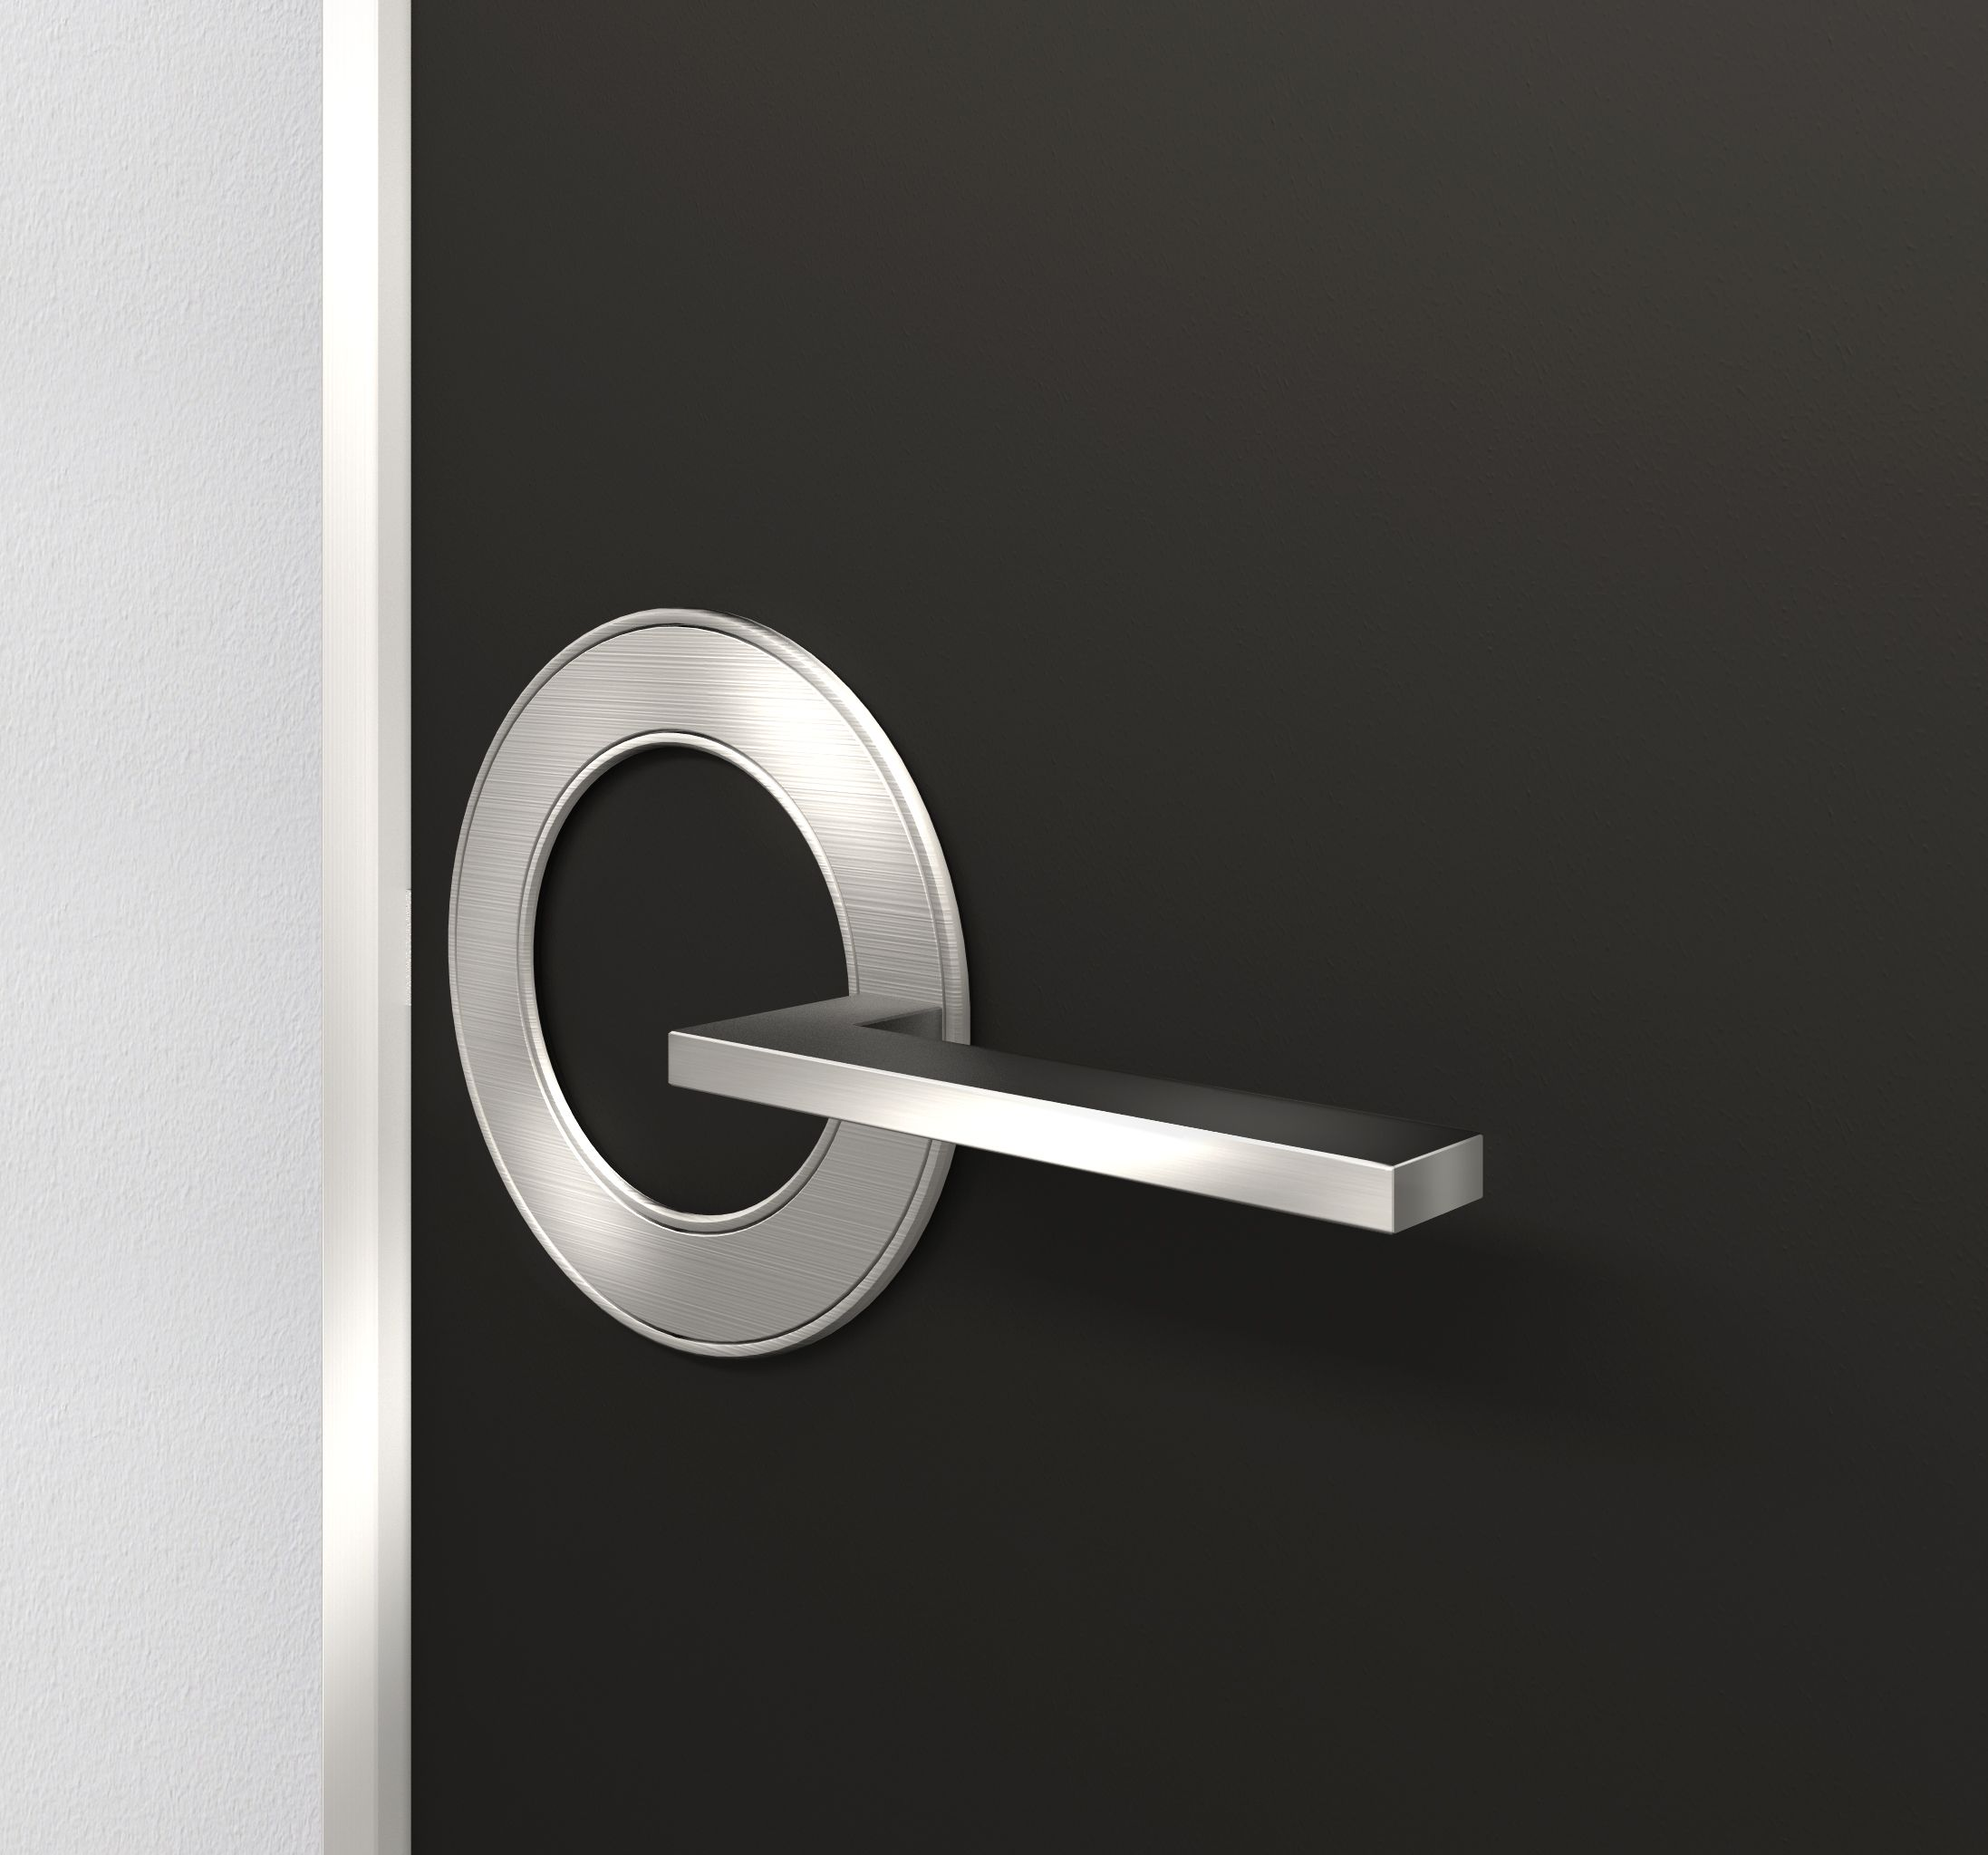 The Orb Door Handle. Like The Design And Concept Behind